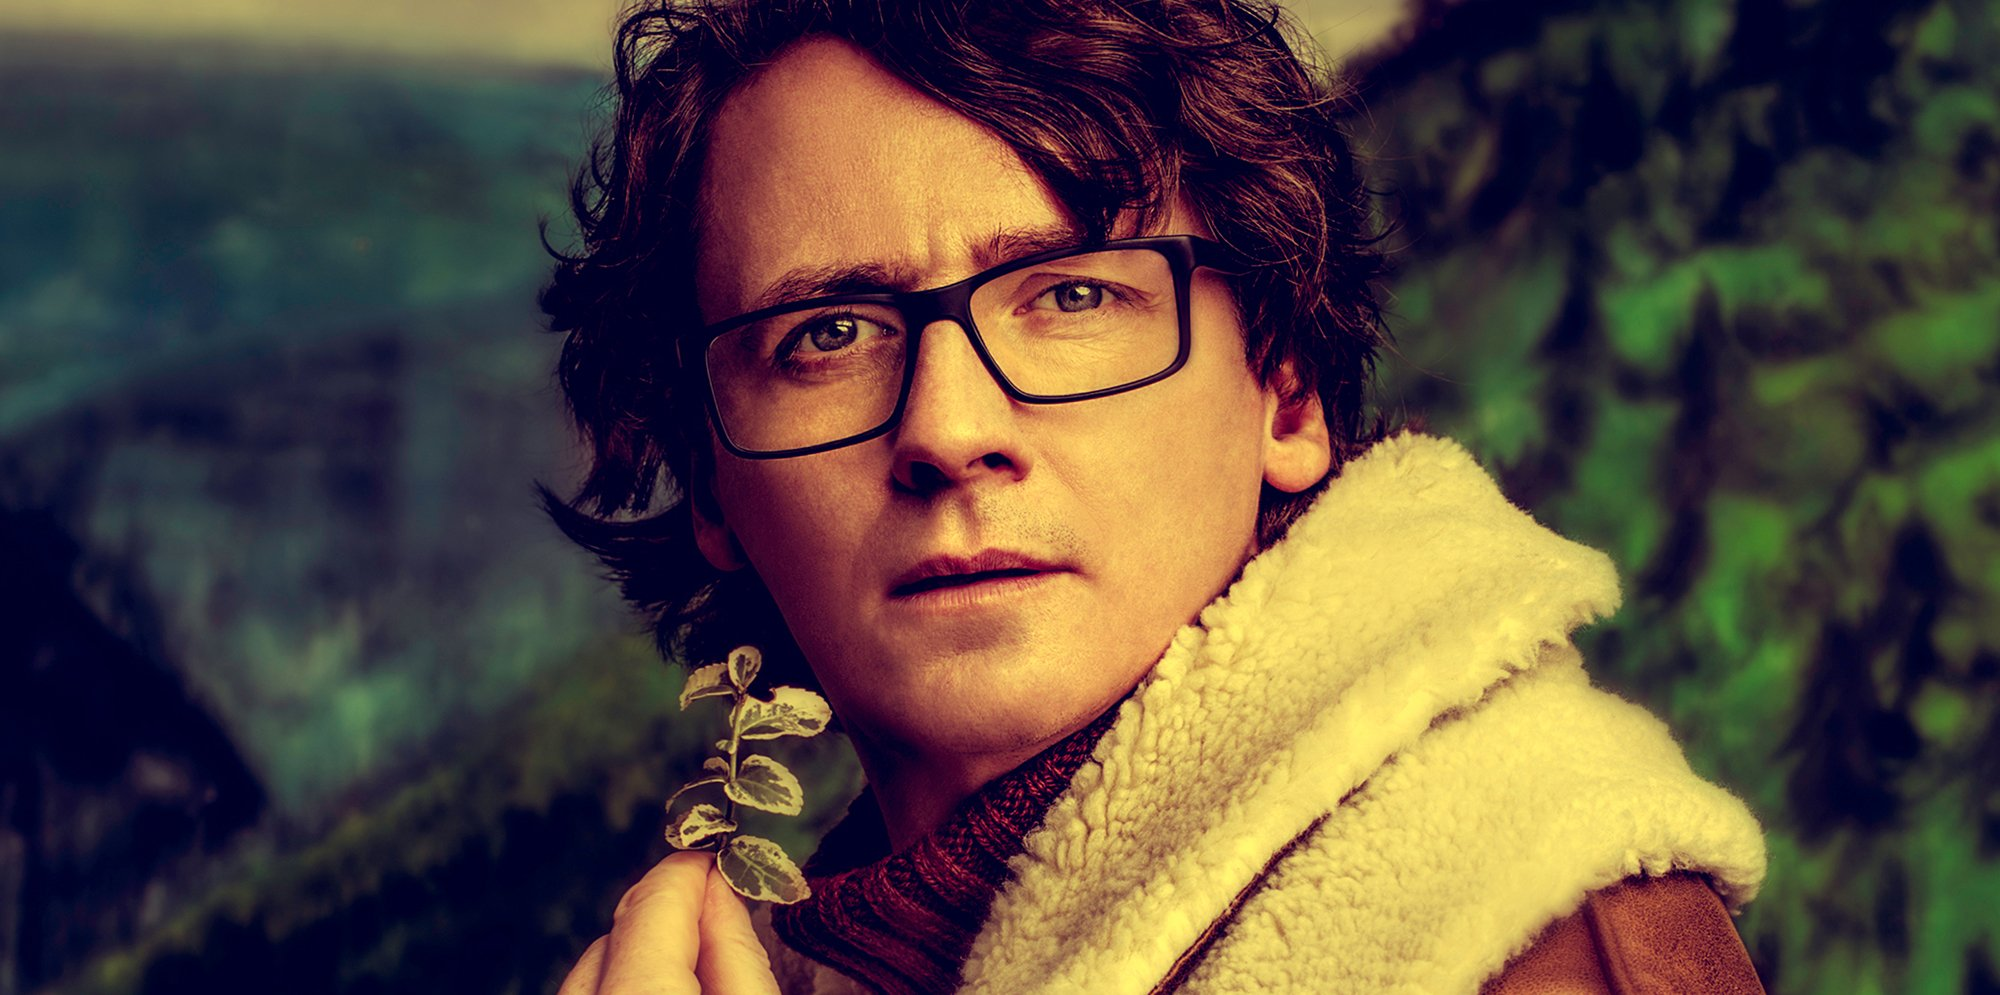 Comedian Ed Byrne looks wistfully, he's holding a small branch with leaves and wearing a woollen jacket